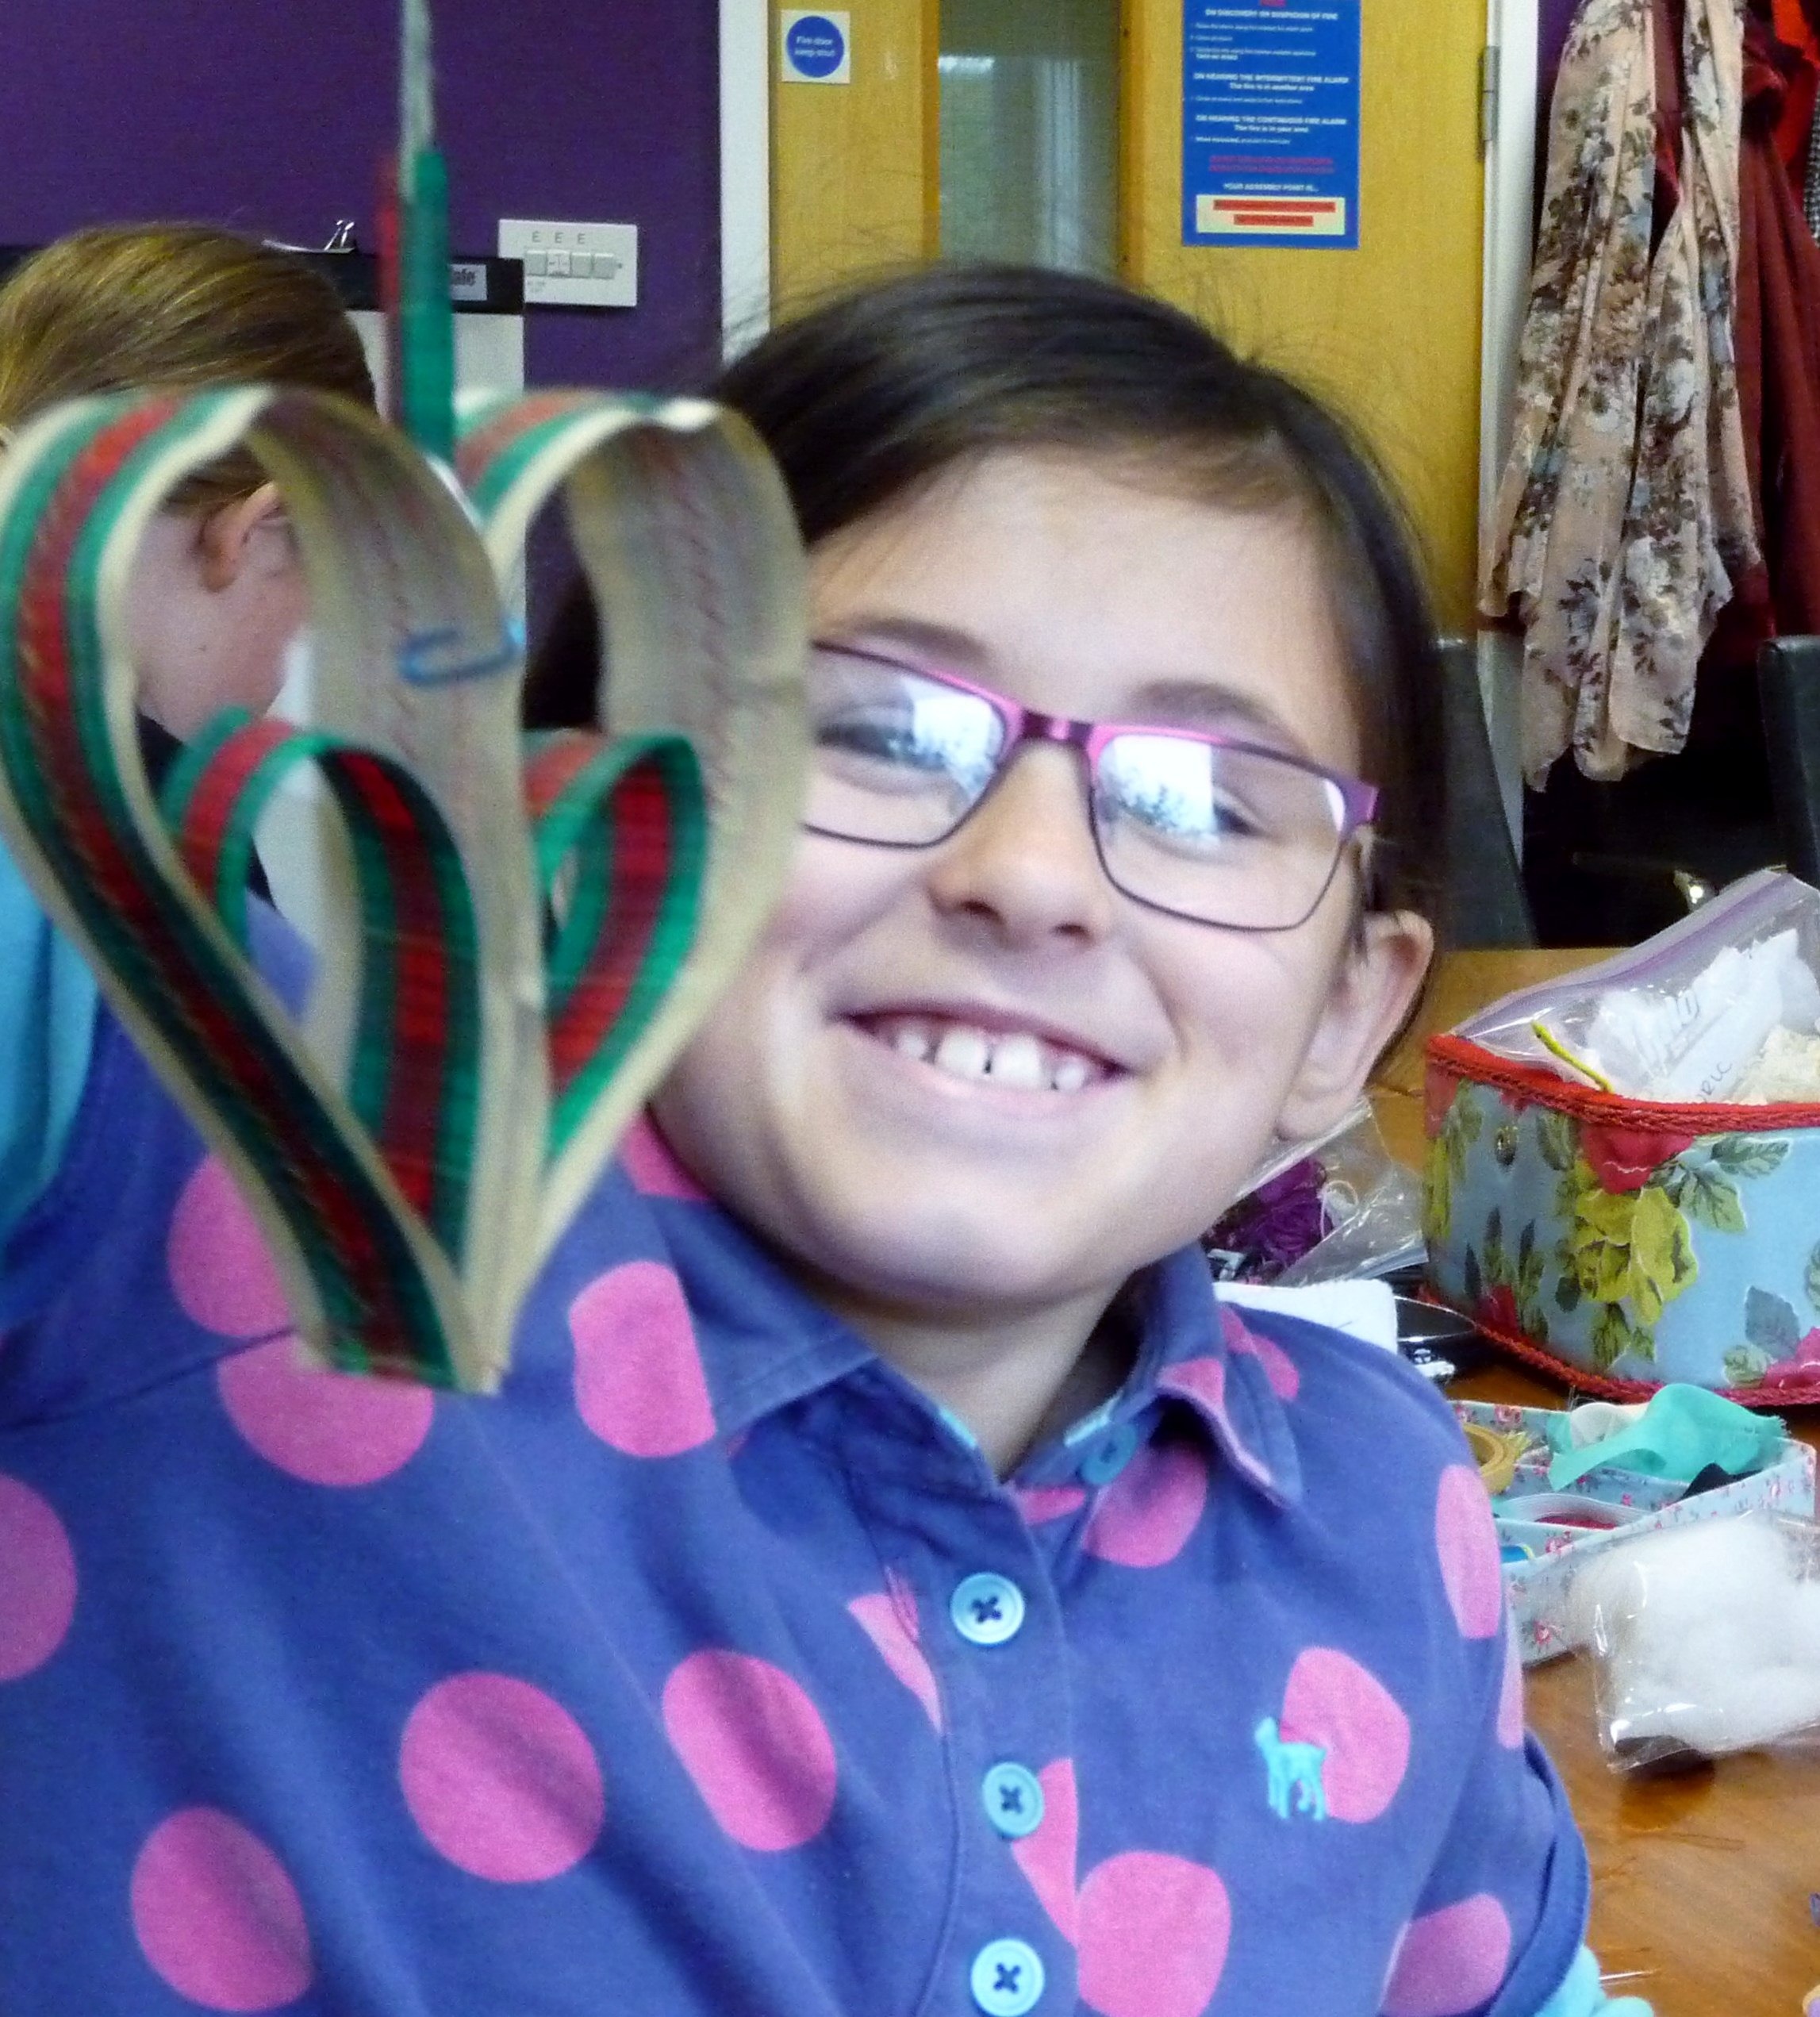 Zoe is pleased with her machine sewn heart dcoration for Christmas